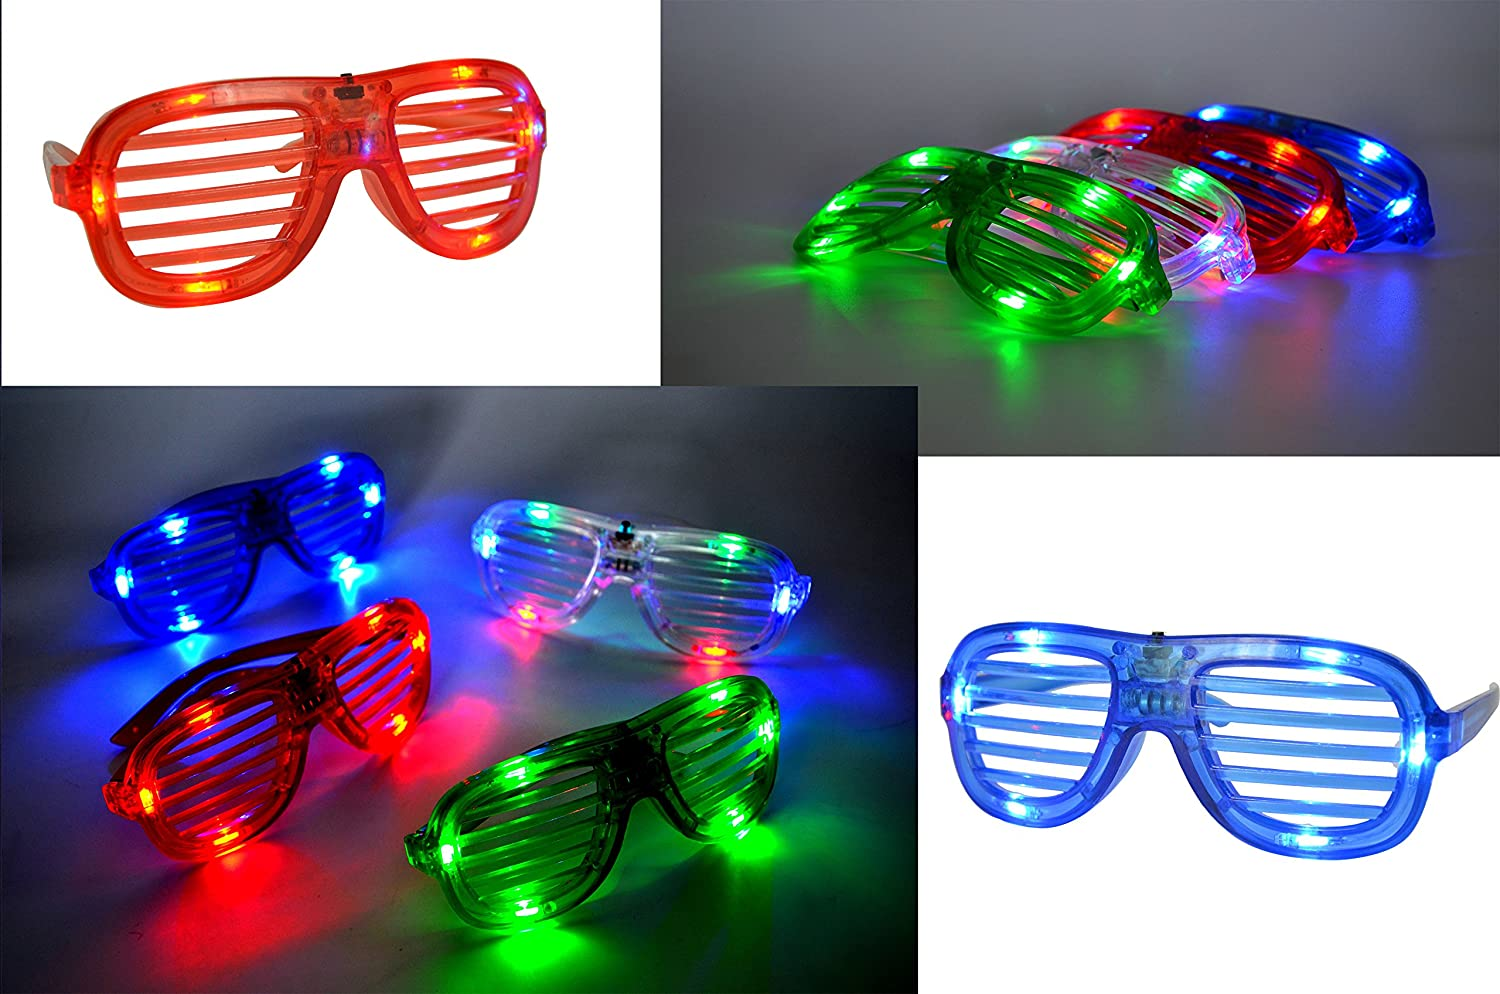 Led light up slotted shades titan slots 2 download